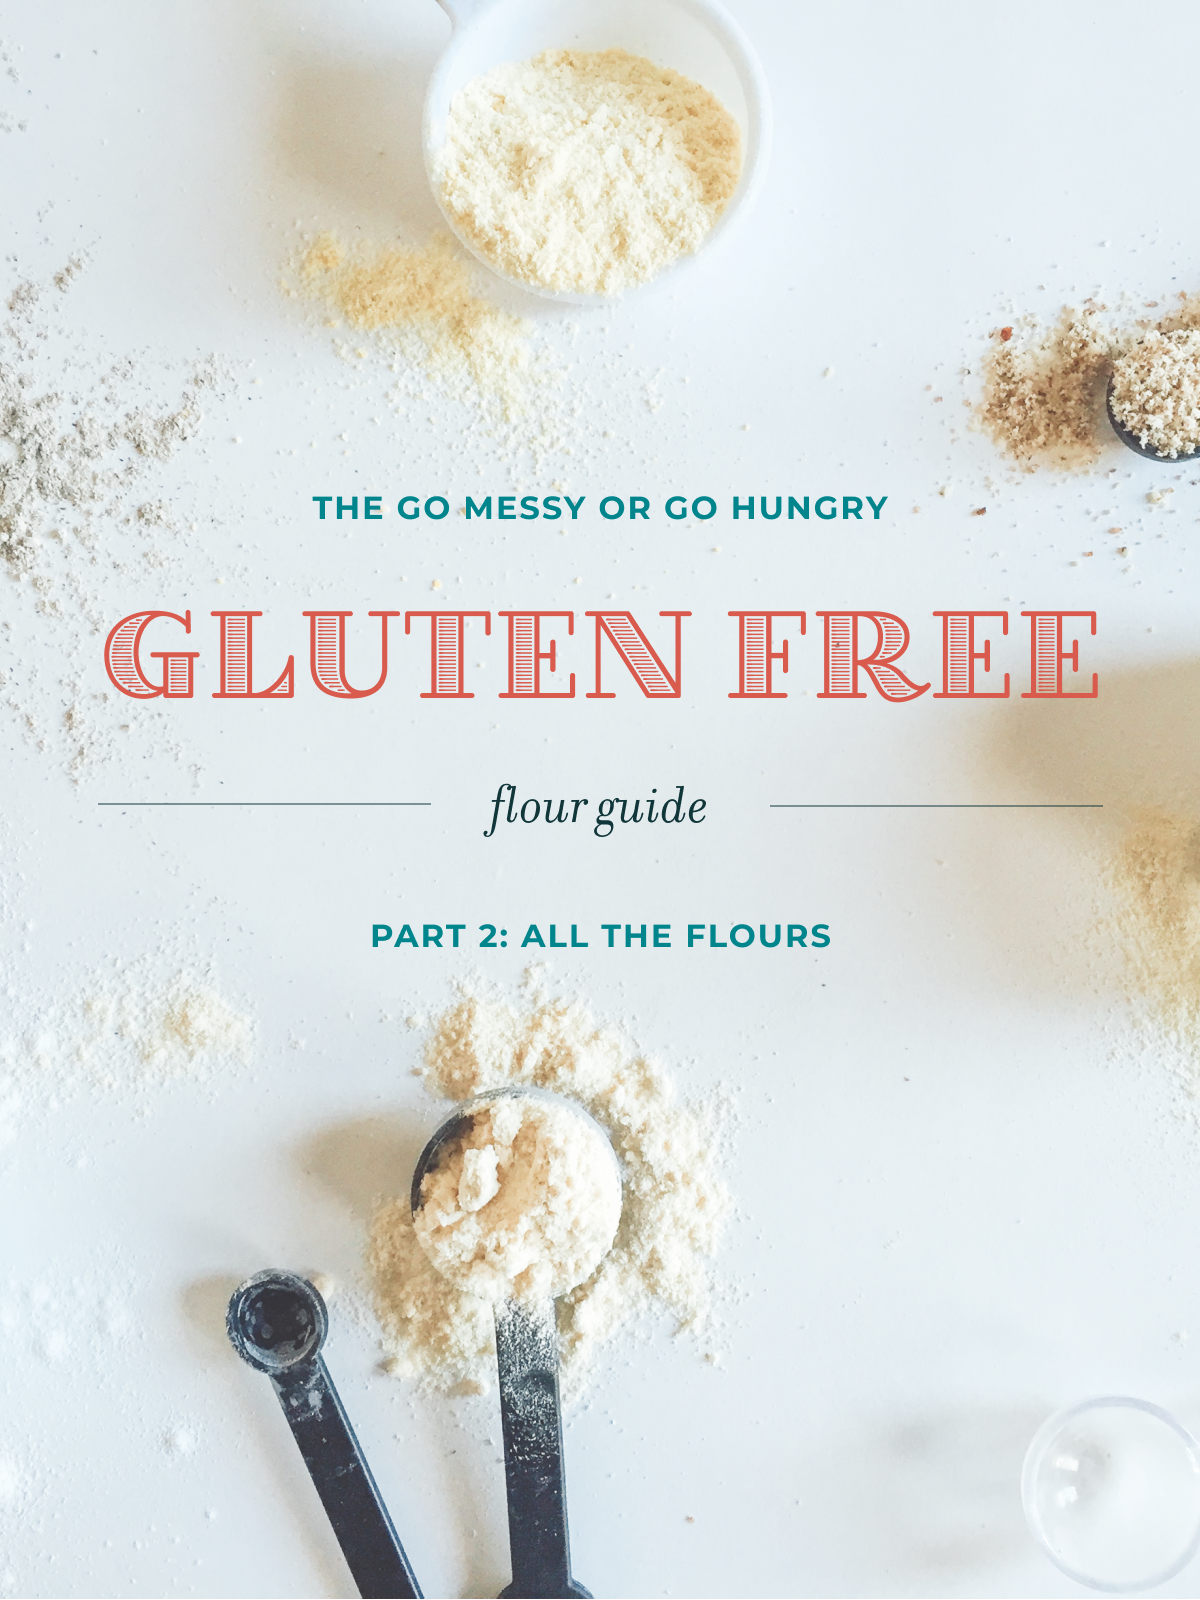 Gluten Free Flour Guide Part 2: All the Flours | Go Messy or Go Hungry